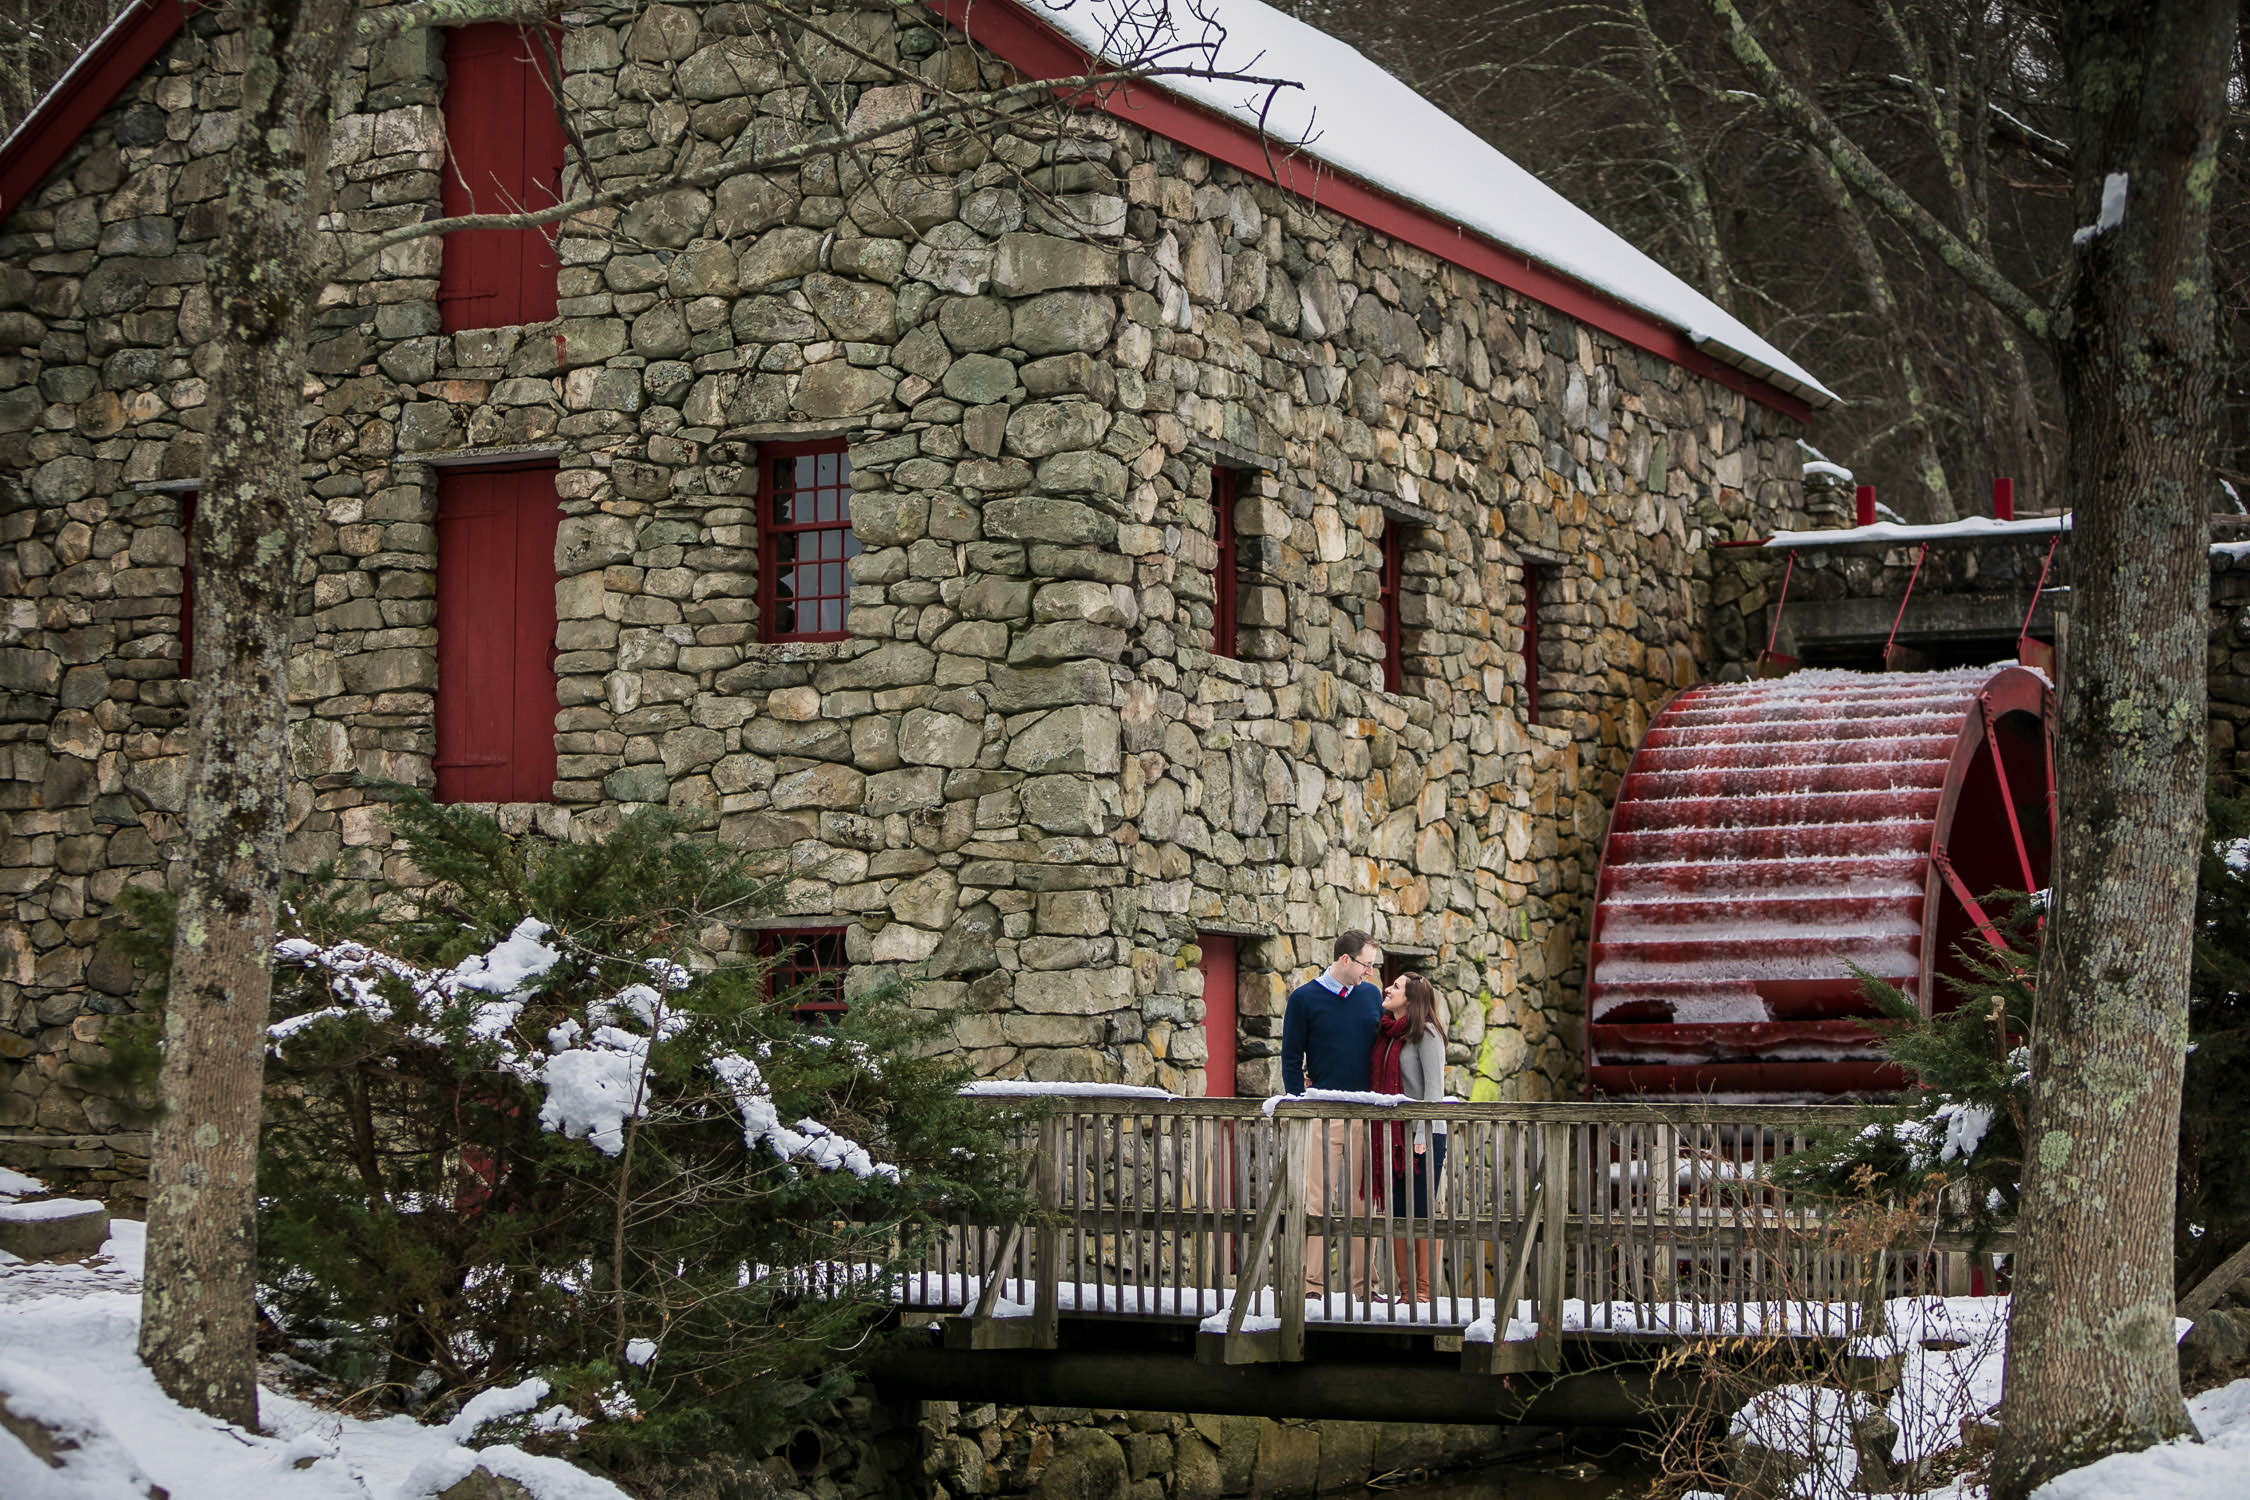 engagement session in the winter, sudbury ma wayside in grist mill, fresh snow portraits with scarfs and sweaters